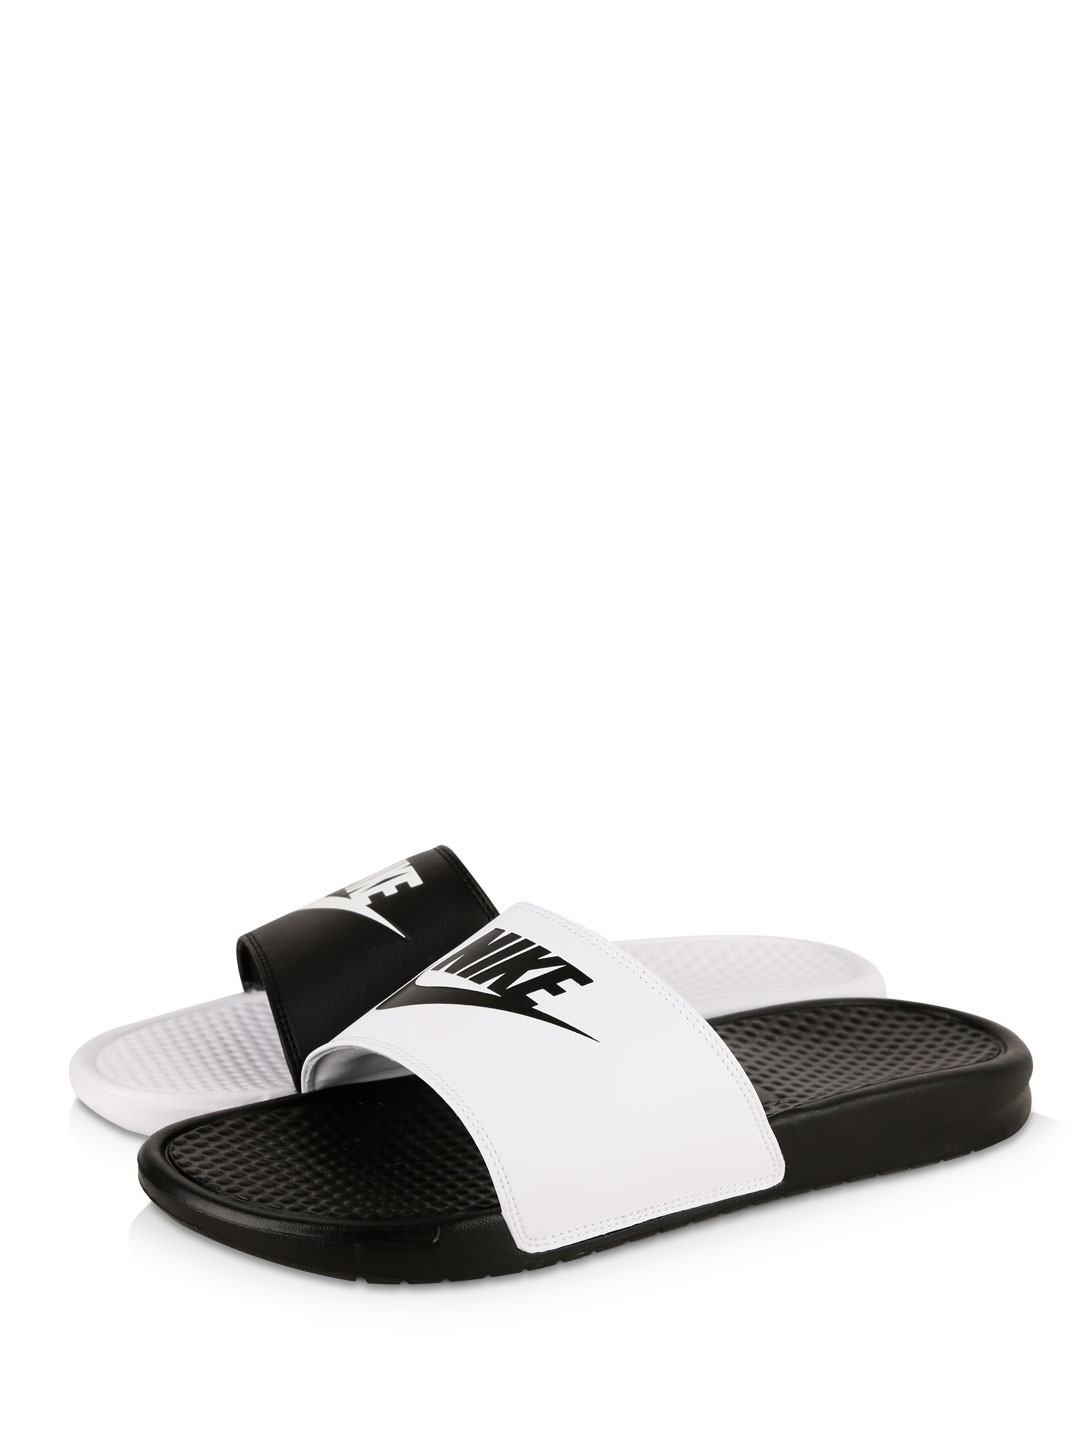 Buy Adidas Slides Online On Sale >Off58% Di Sconti